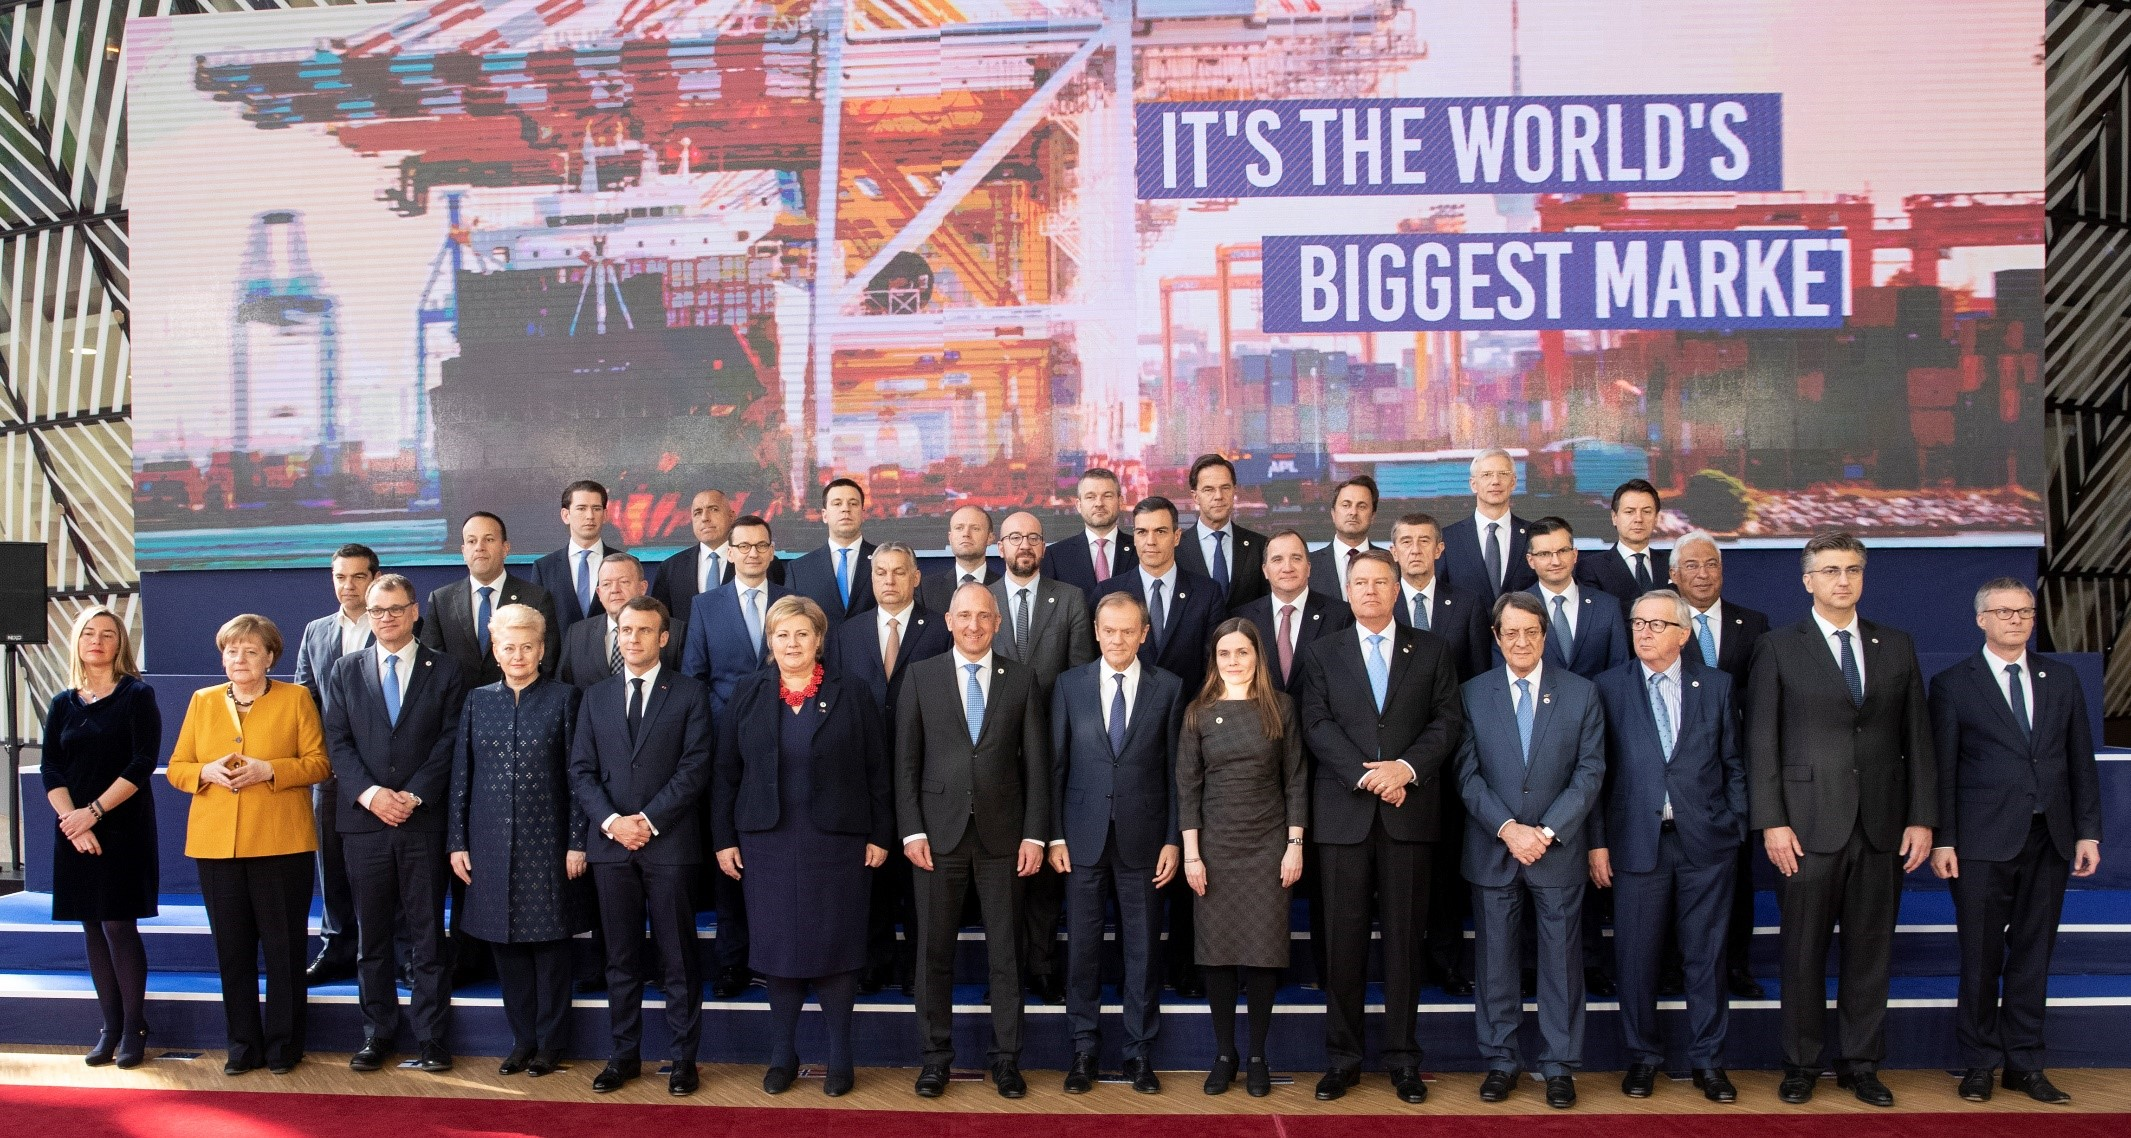 The European Council's members picture